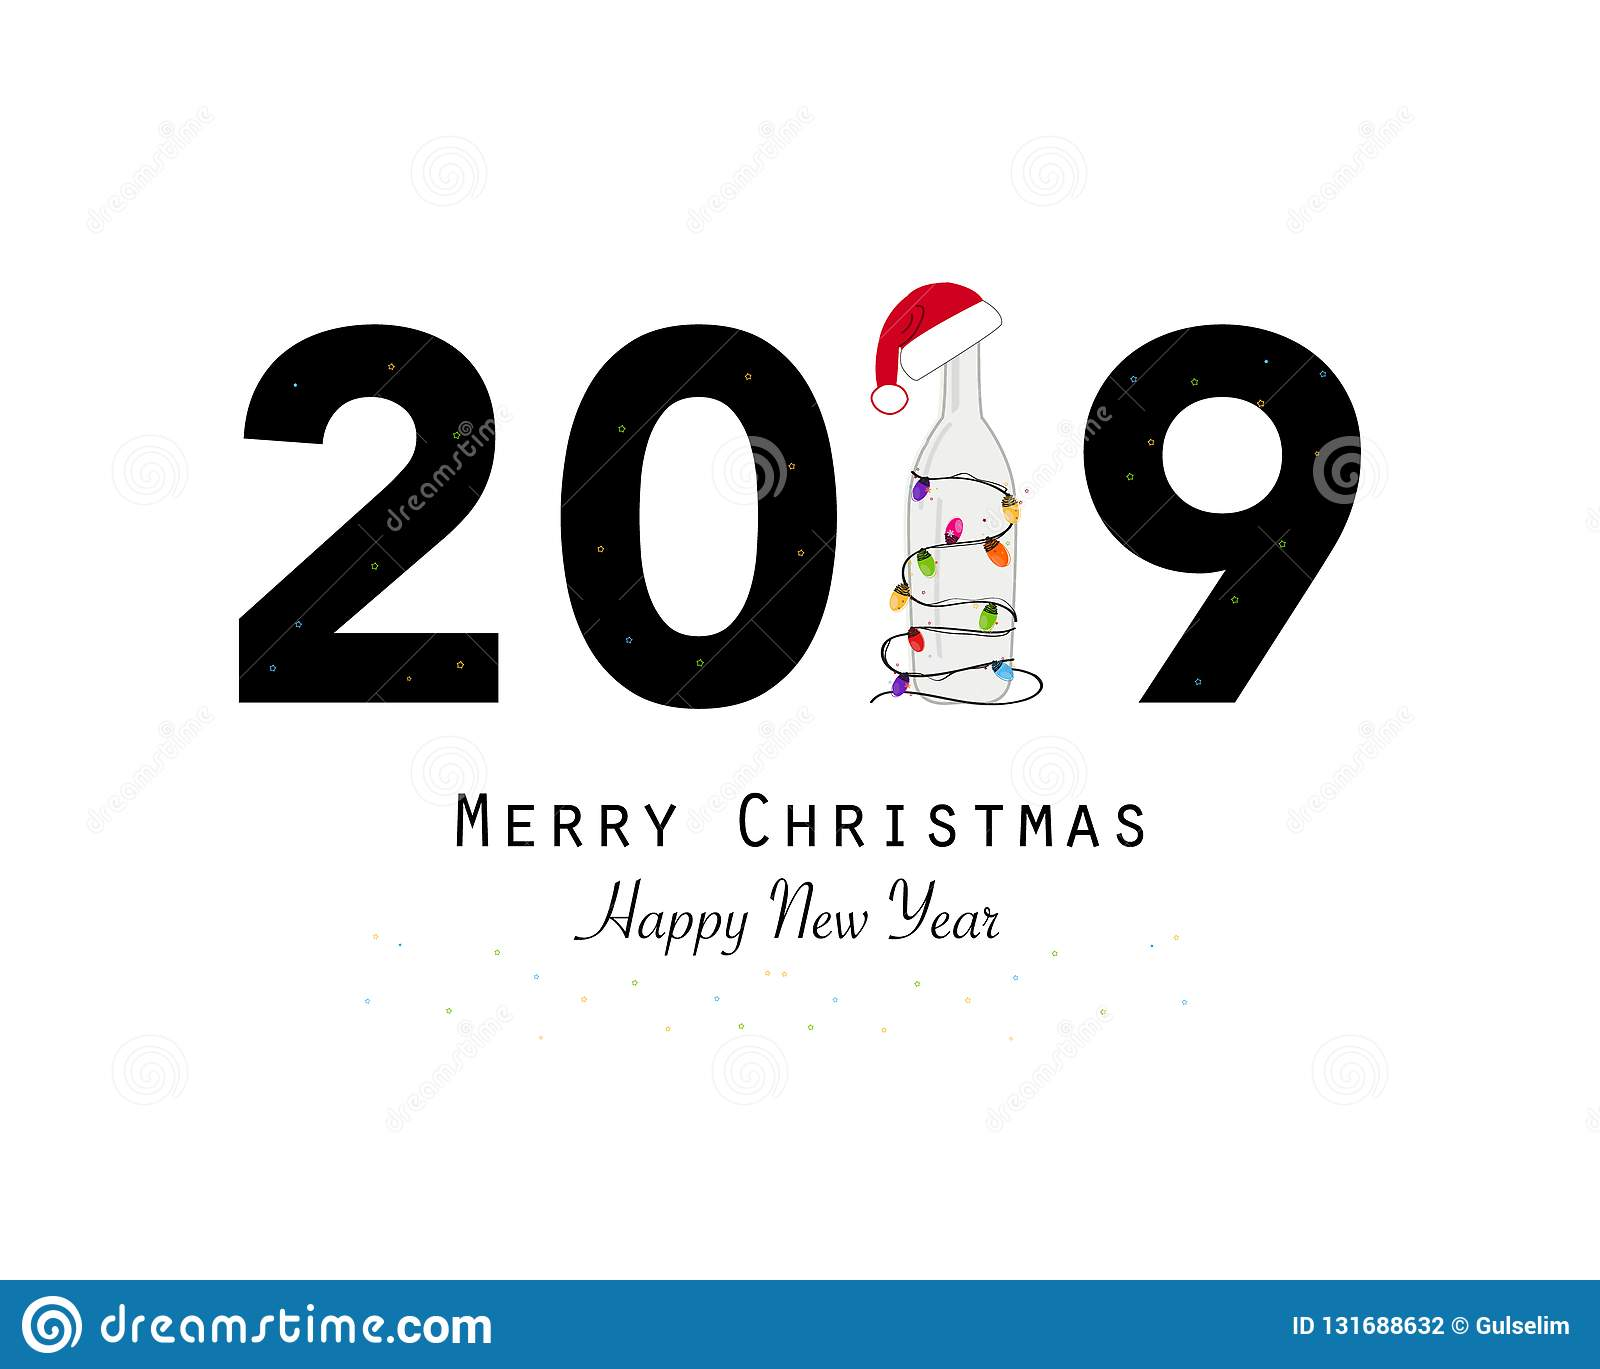 happy new year greeting card with 2019 text and wine bottle